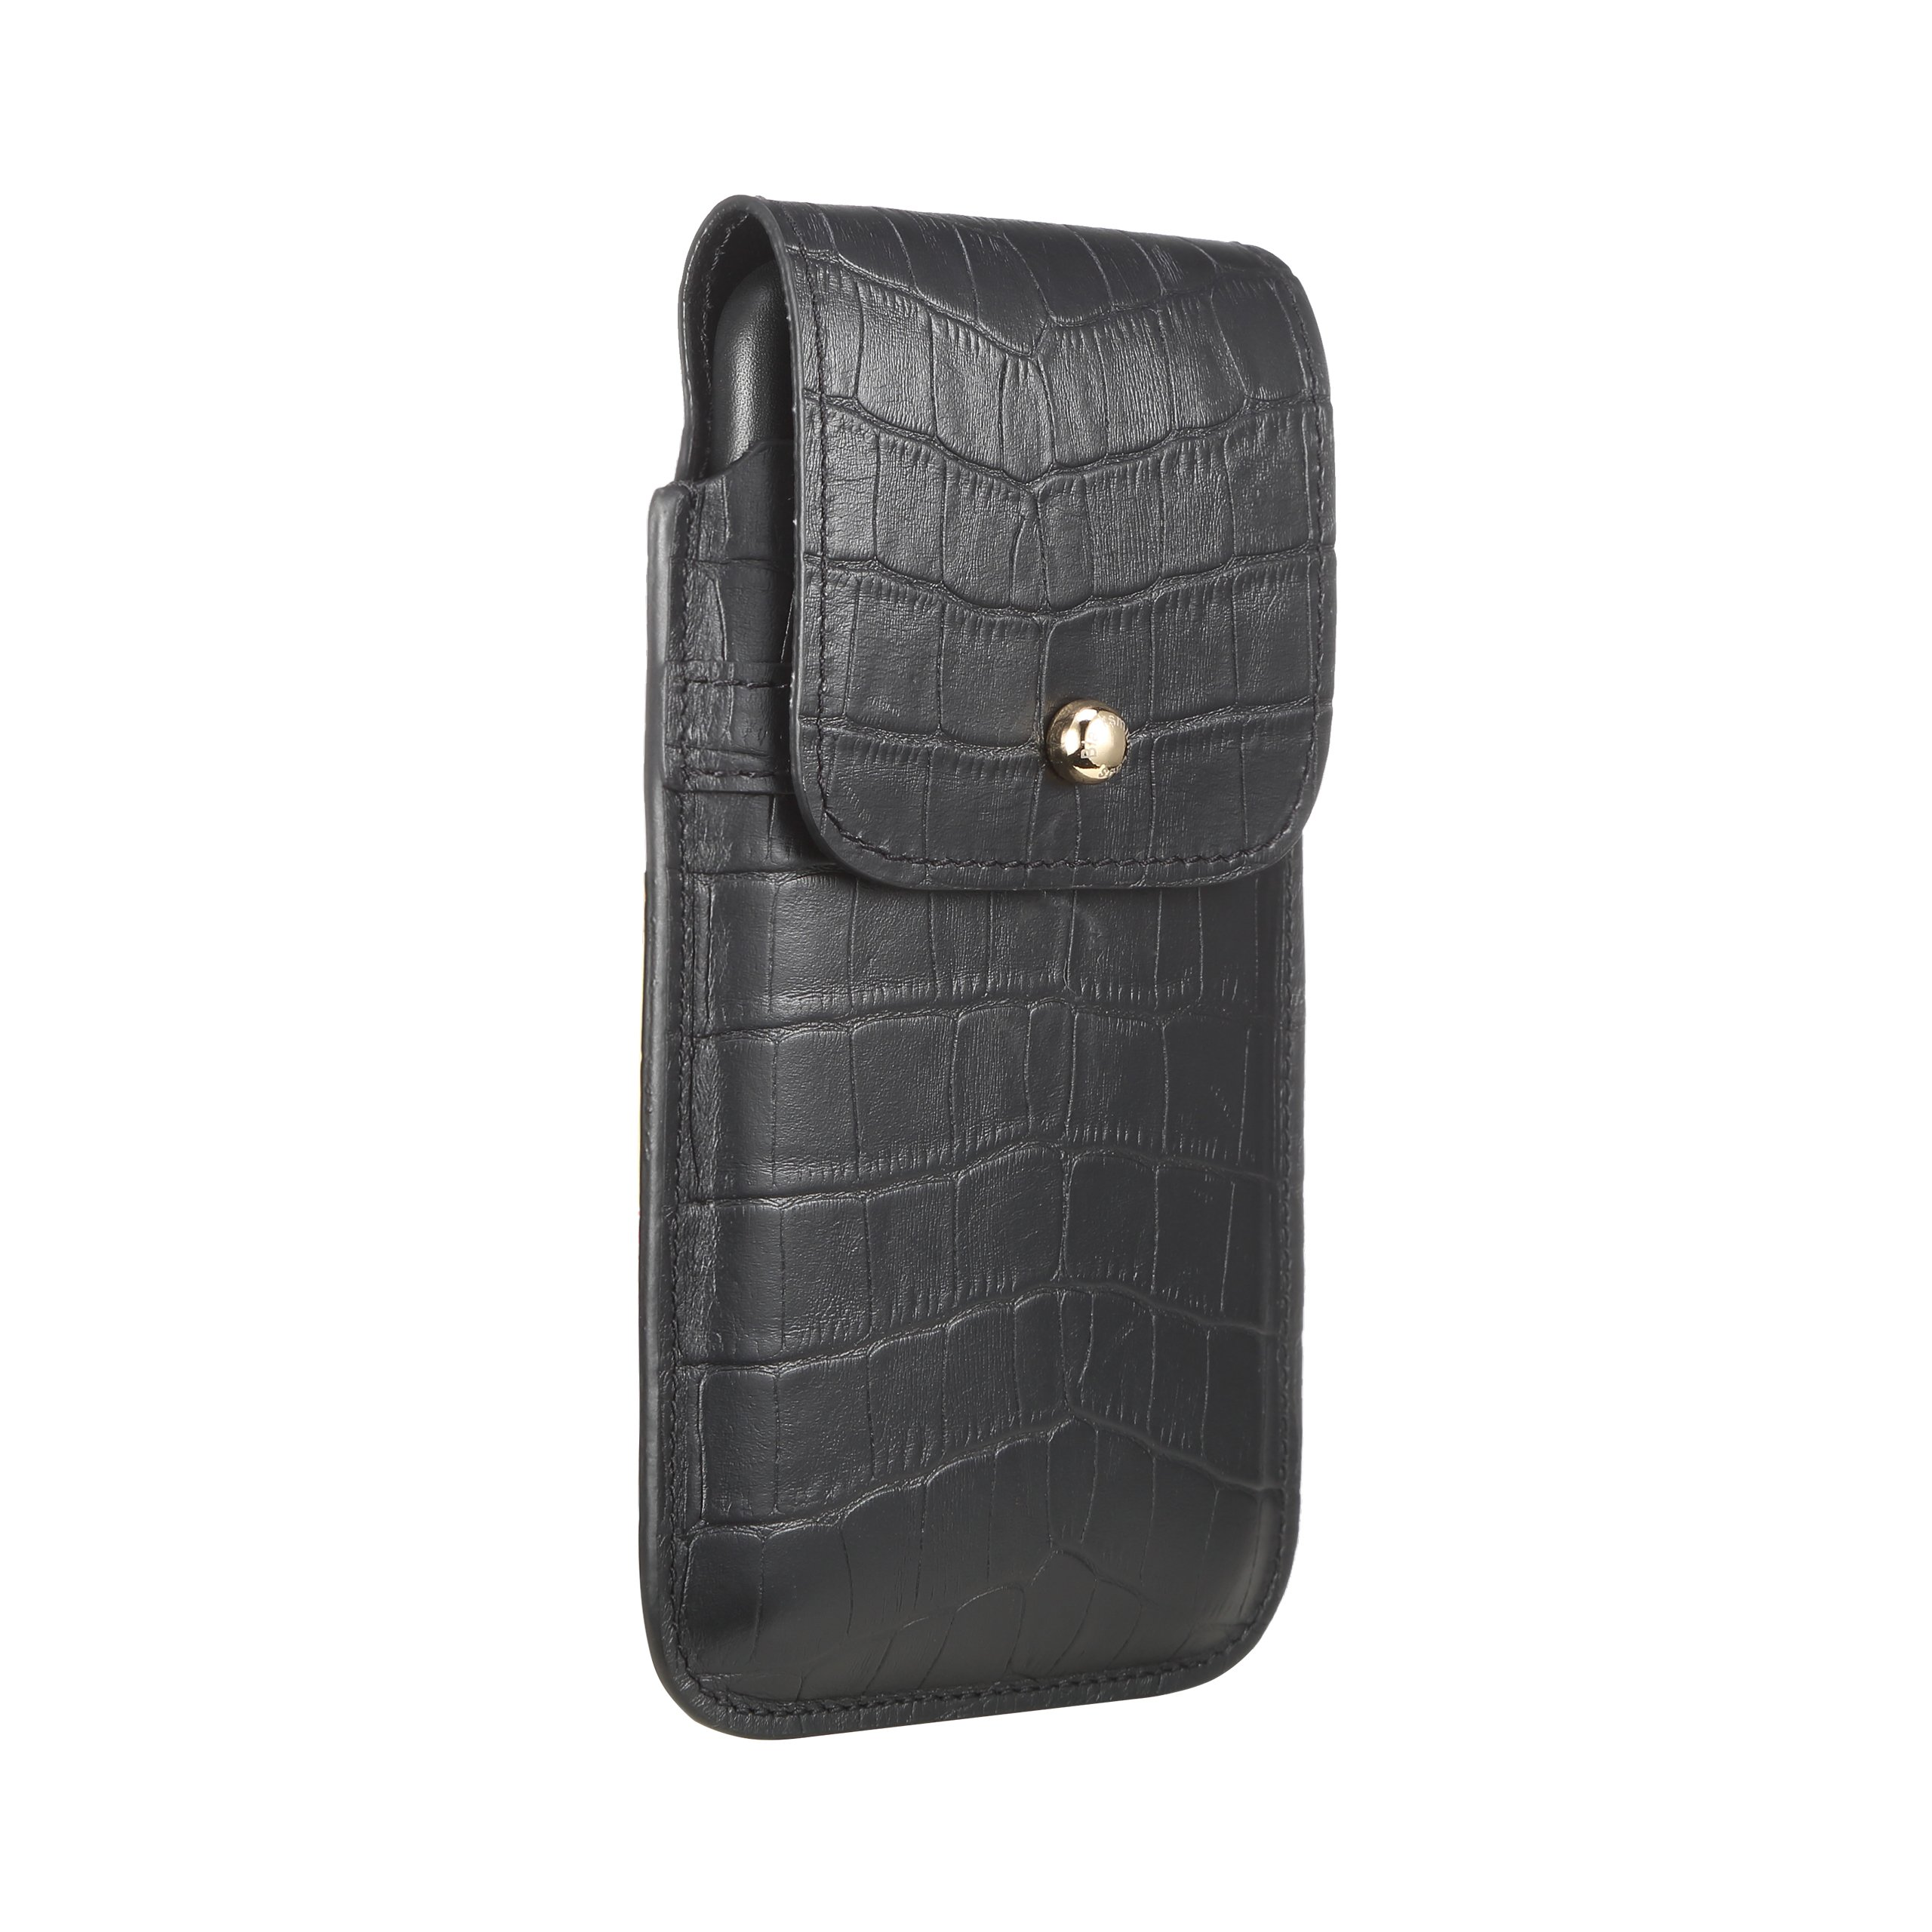 Blacksmith-Labs Barrett Mezzano 2017 Premium Genuine Leather Swivel Belt Clip Holster for Apple iPhone 7 Plus for use with Apple Leather Case - Black Croc Embossed Cowhide/Gold Belt Clip by Blacksmith-Labs (Image #1)